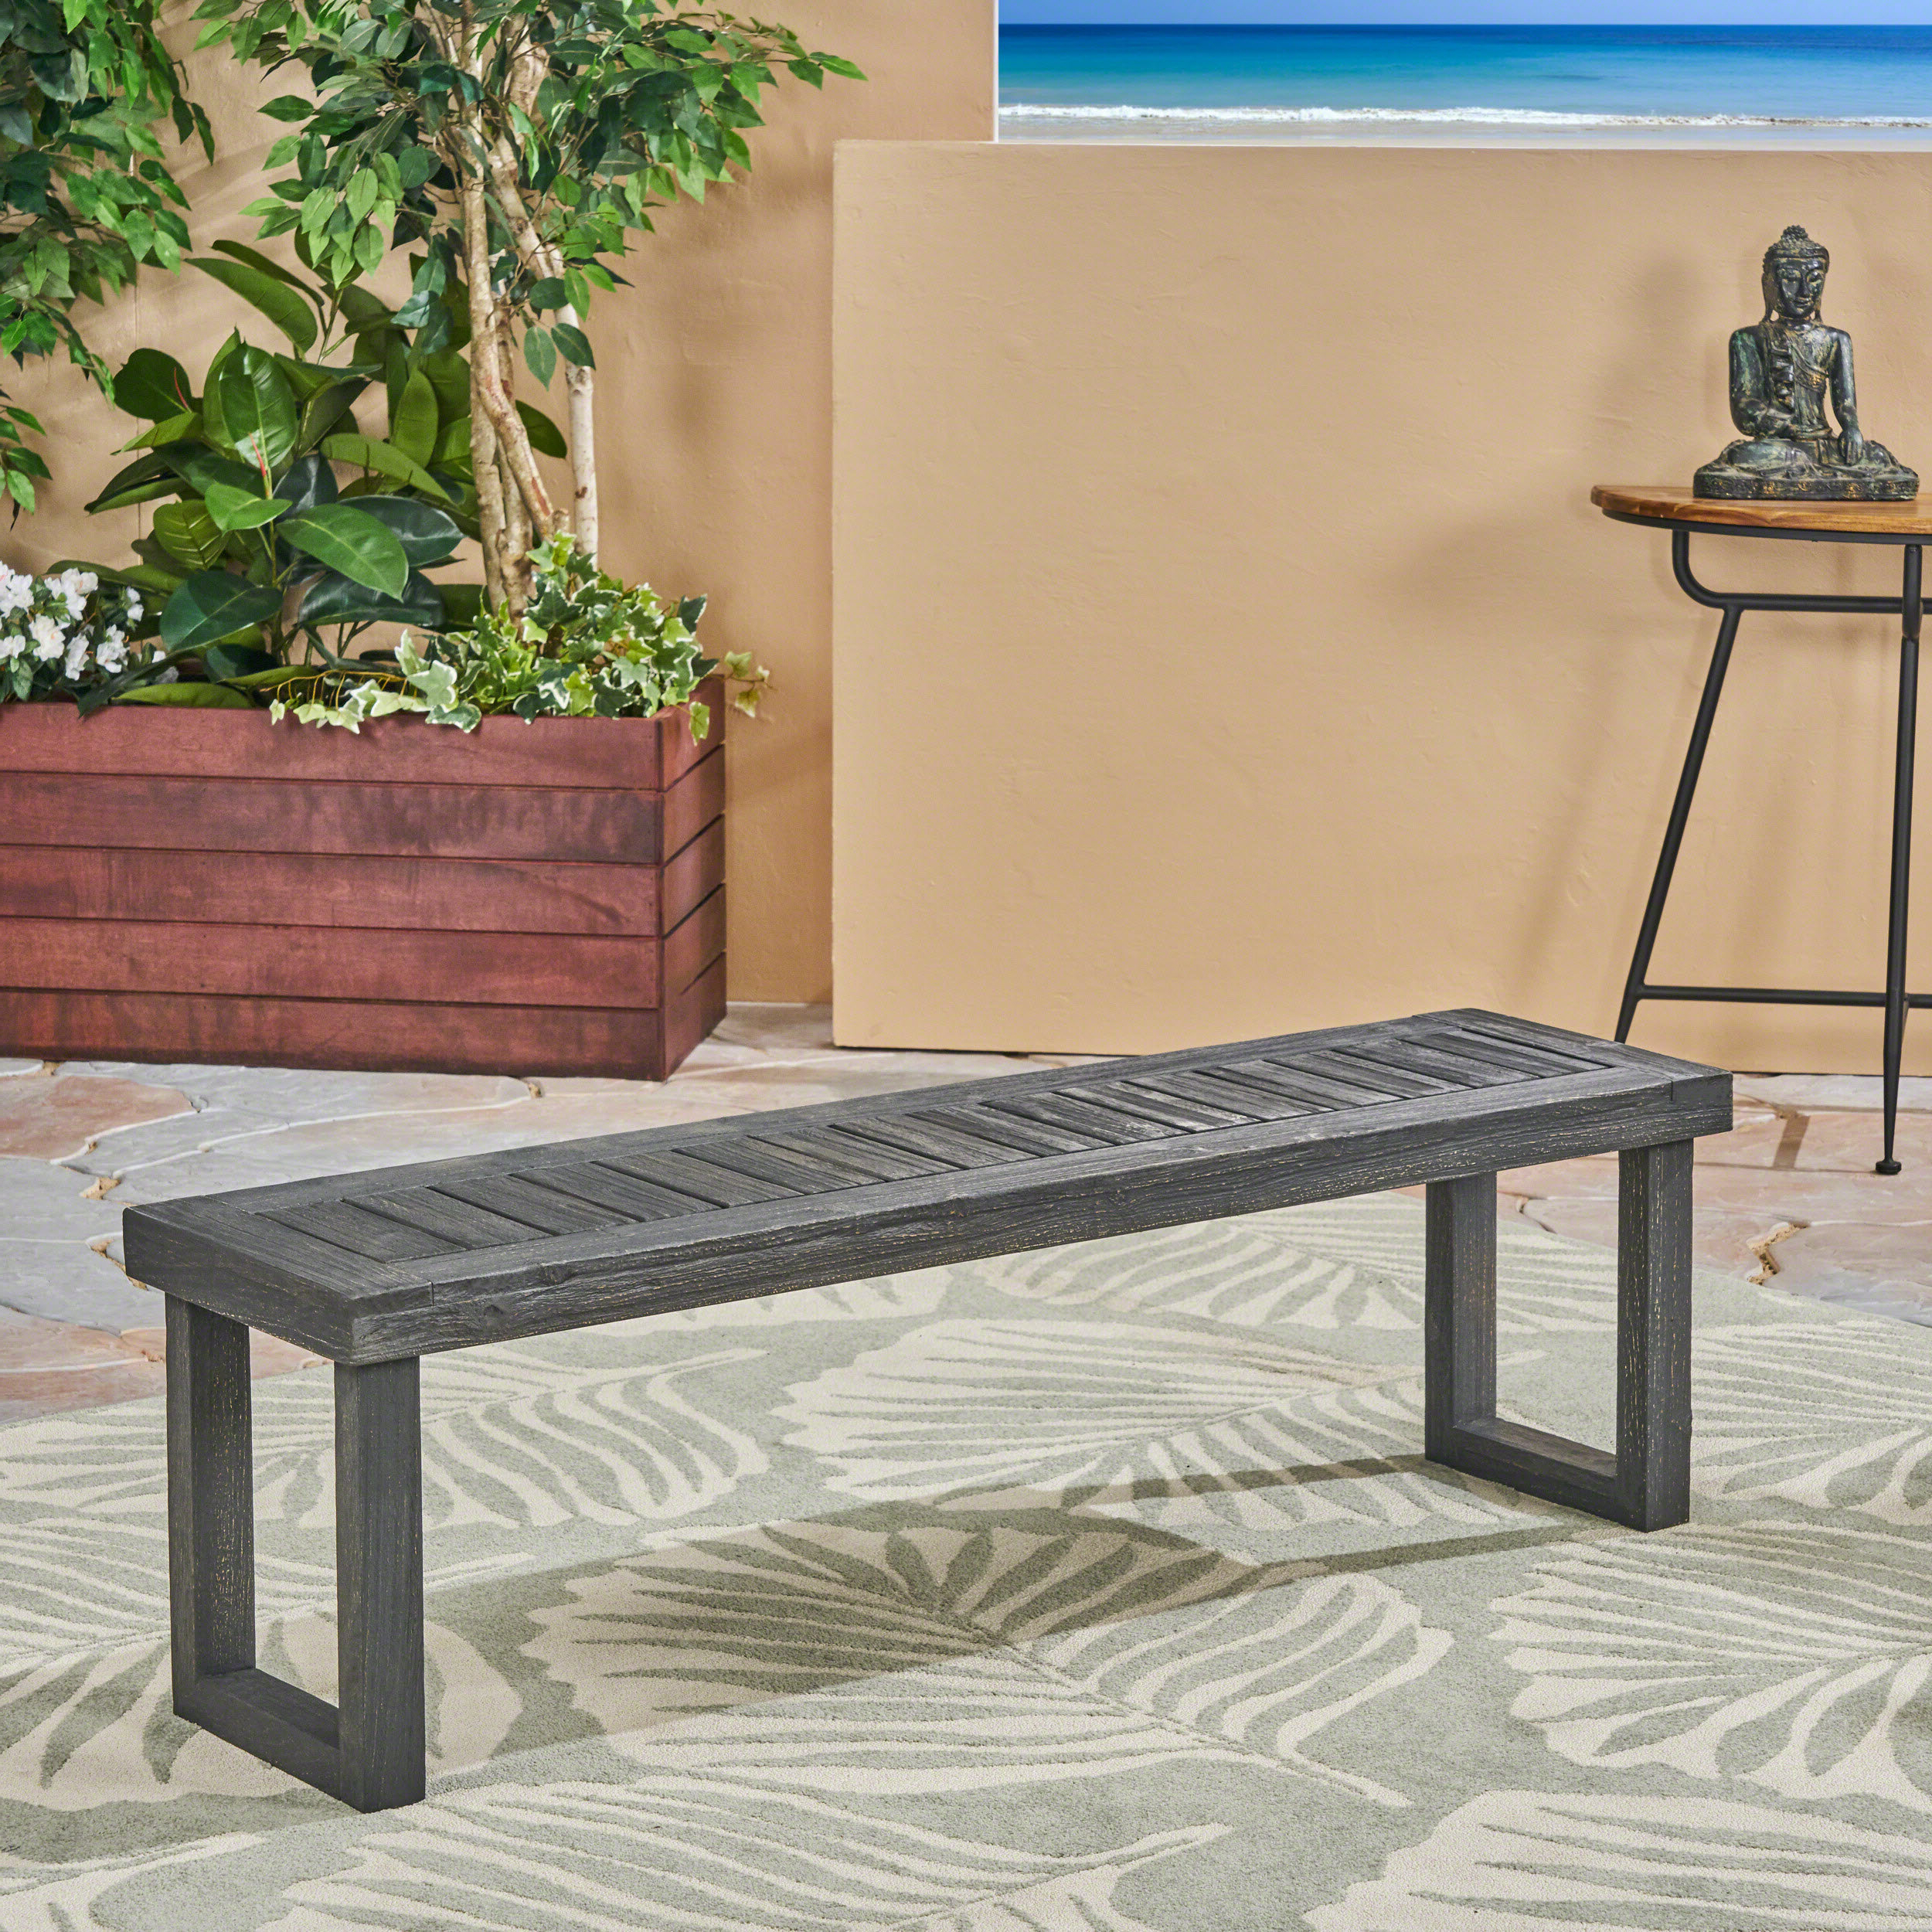 Rutherford Wooden Arbour Bench Inside Widely Used Lucille Timberland Wooden Garden Benches (View 11 of 30)